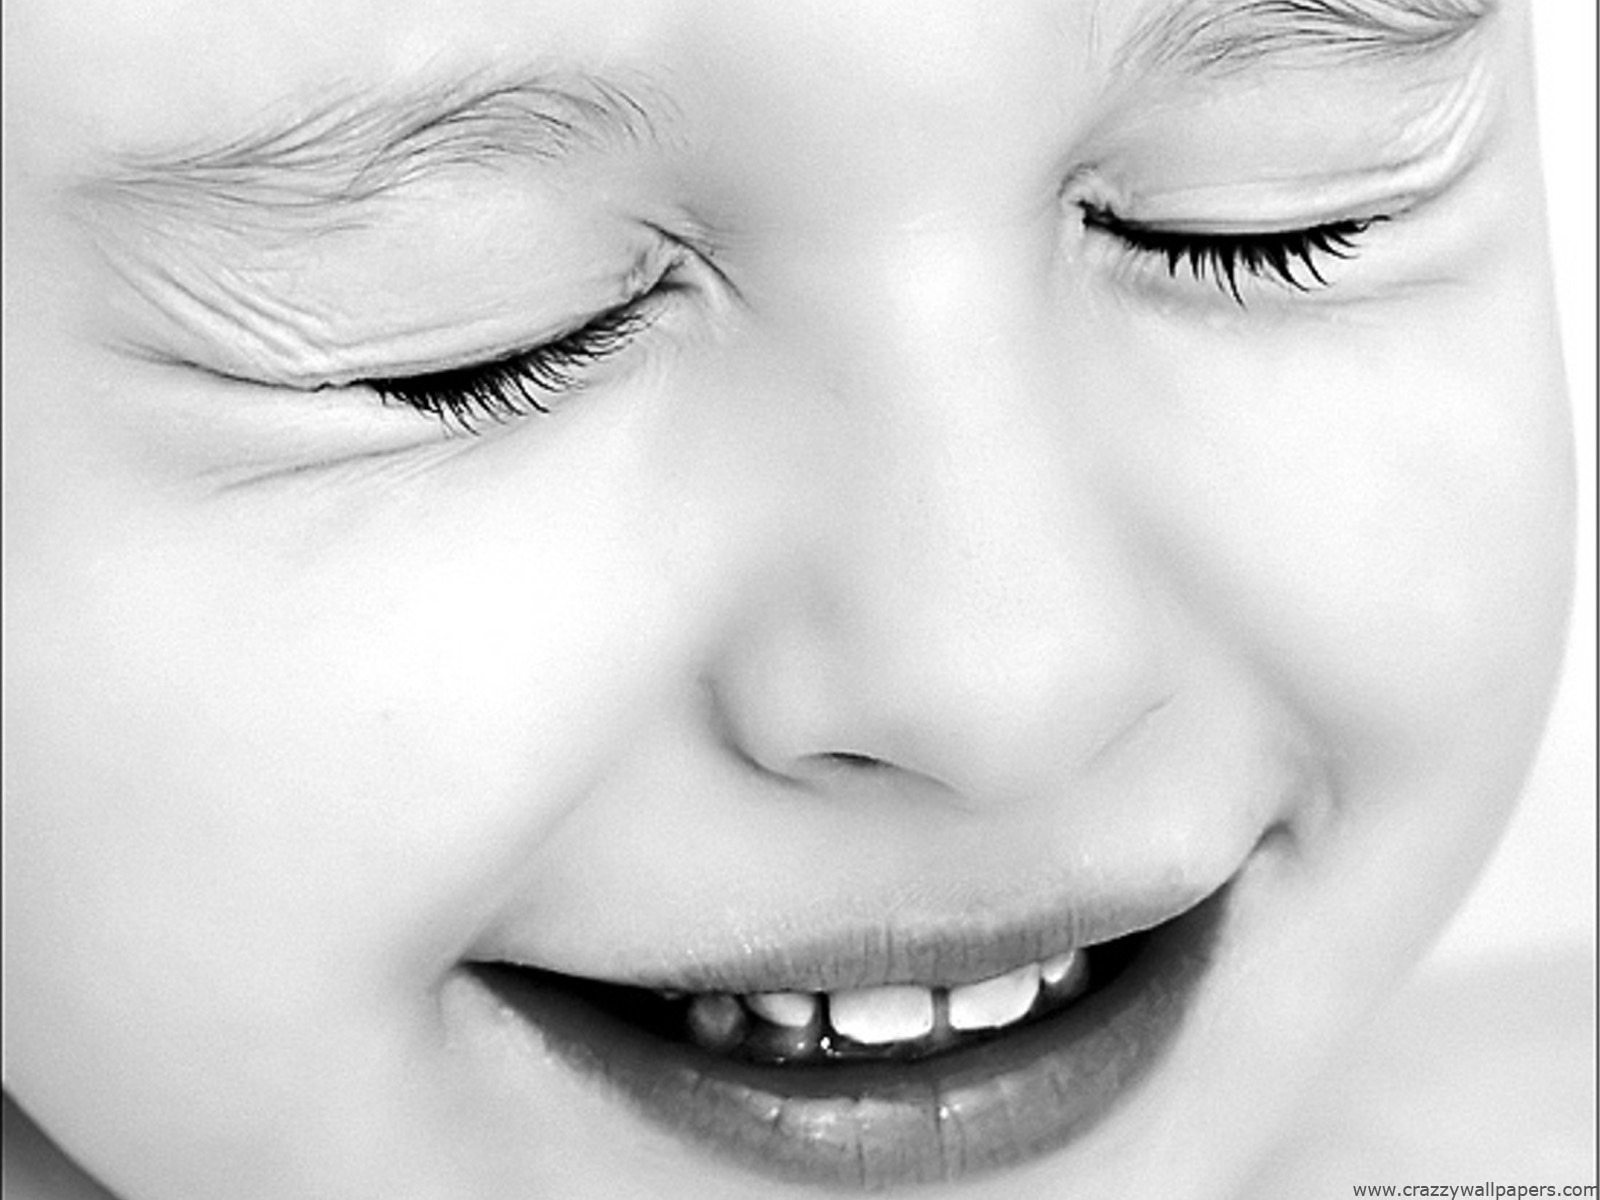 Cute Baby Black And White Wallpapers In Jpg Format For Free Download